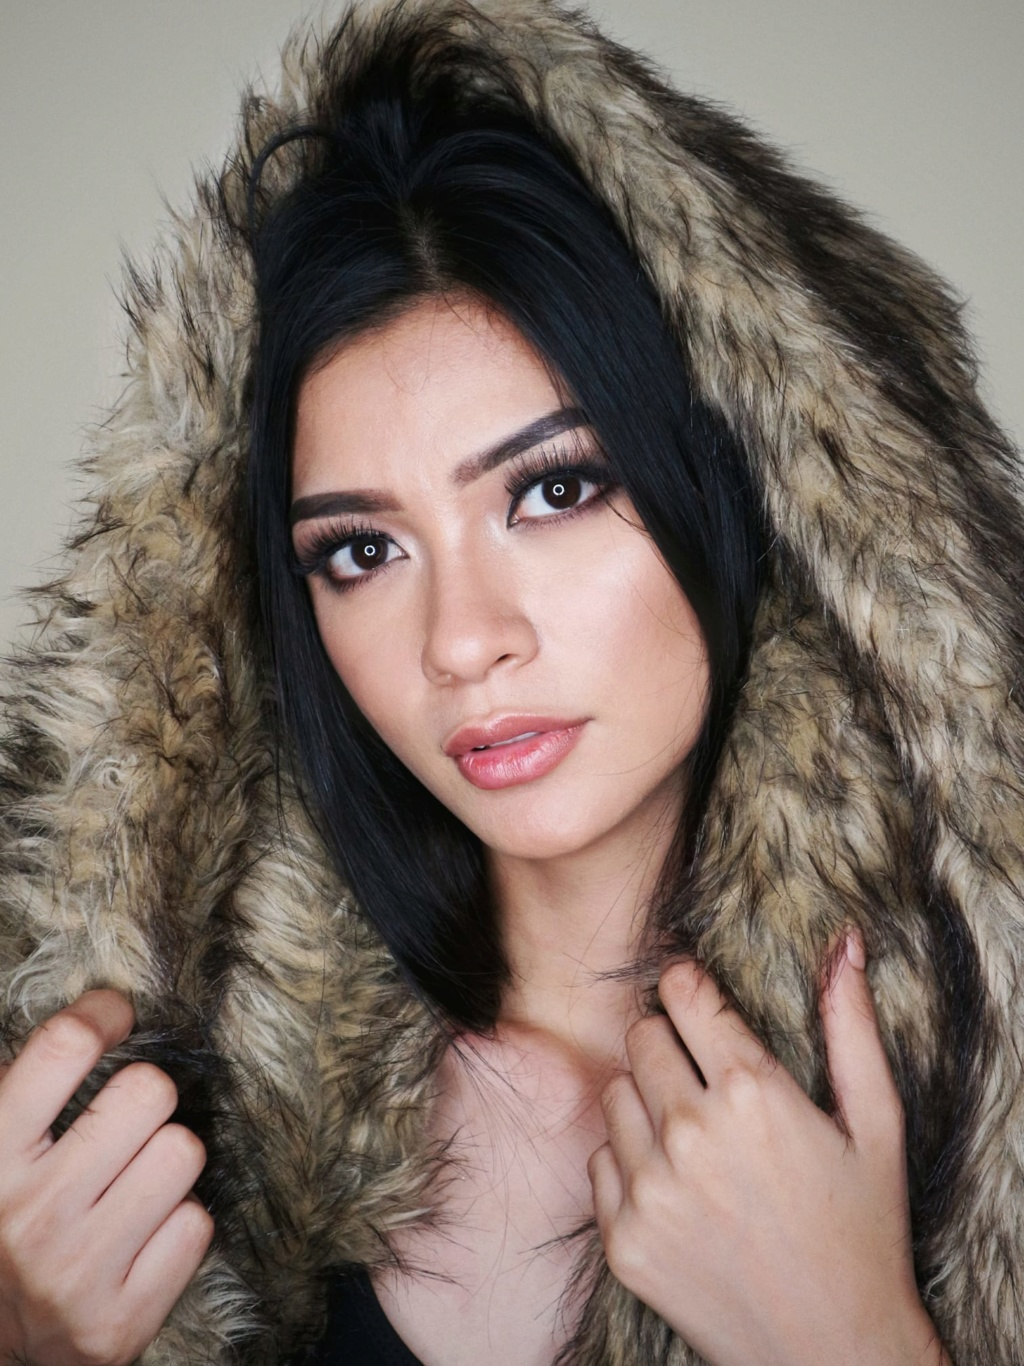 Road to Binibining Pilipinas 2019 - Results!! - Page 3 48406010